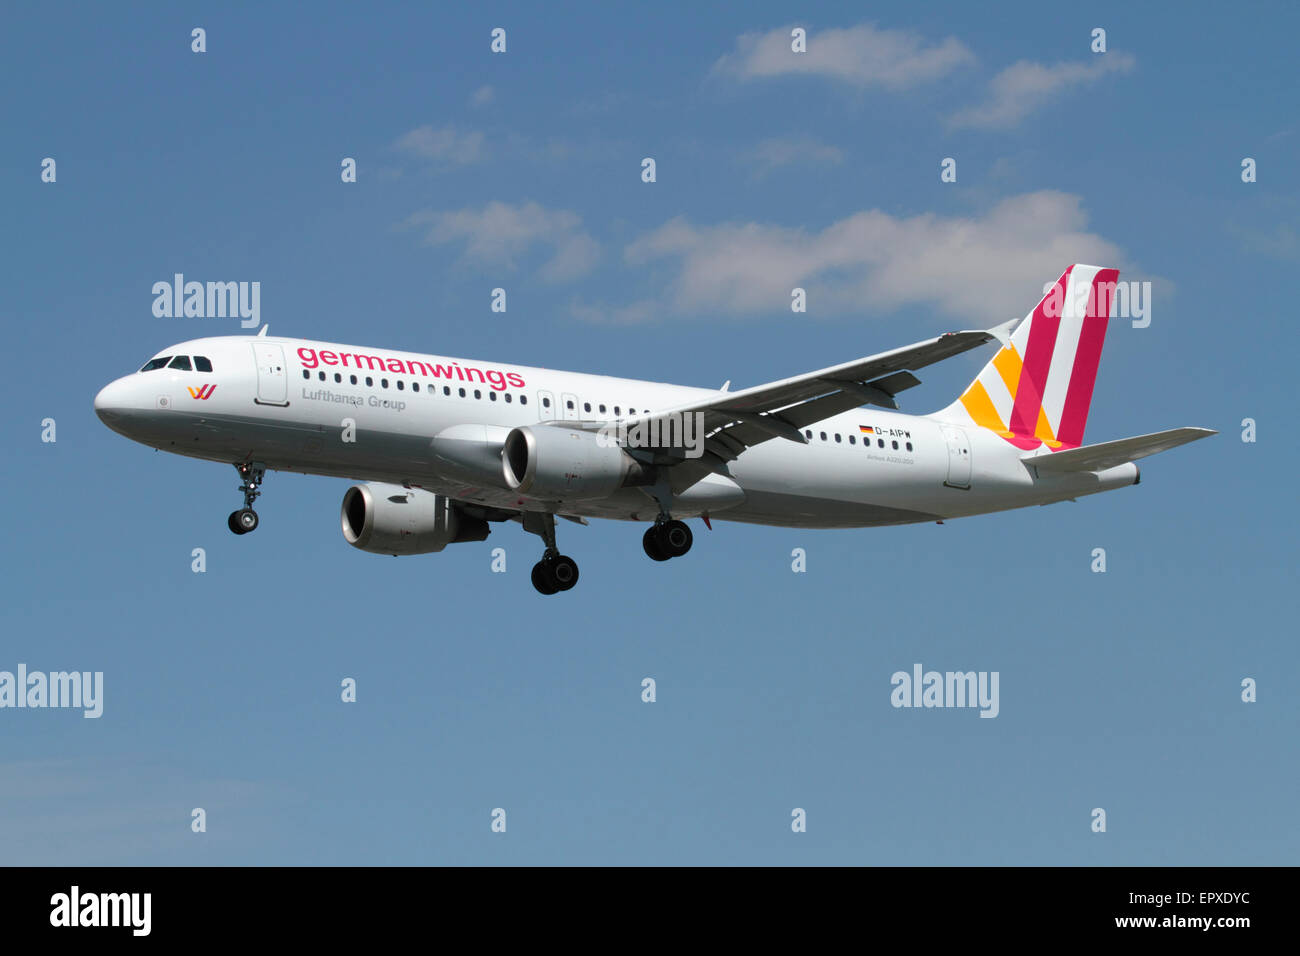 Low cost air travel. Airbus A320 passenger jet belonging to budget airline Germanwings on approach - Stock Image